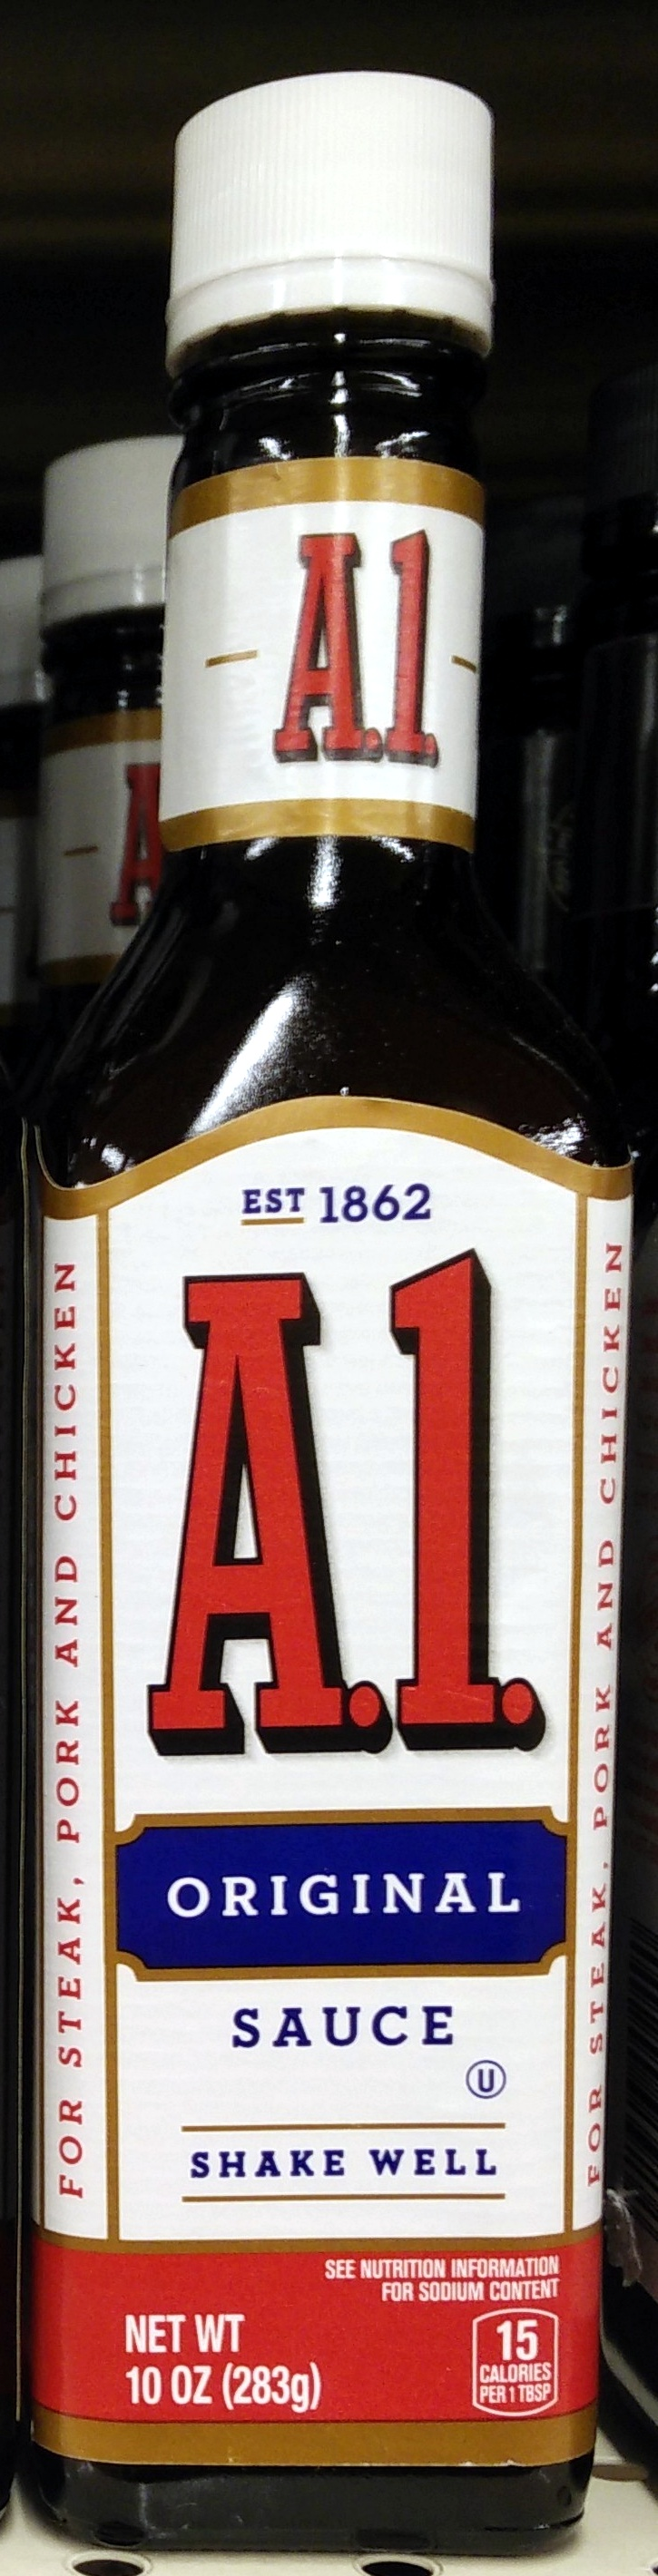 Steak Sauce A 1 10 Oz 283 G